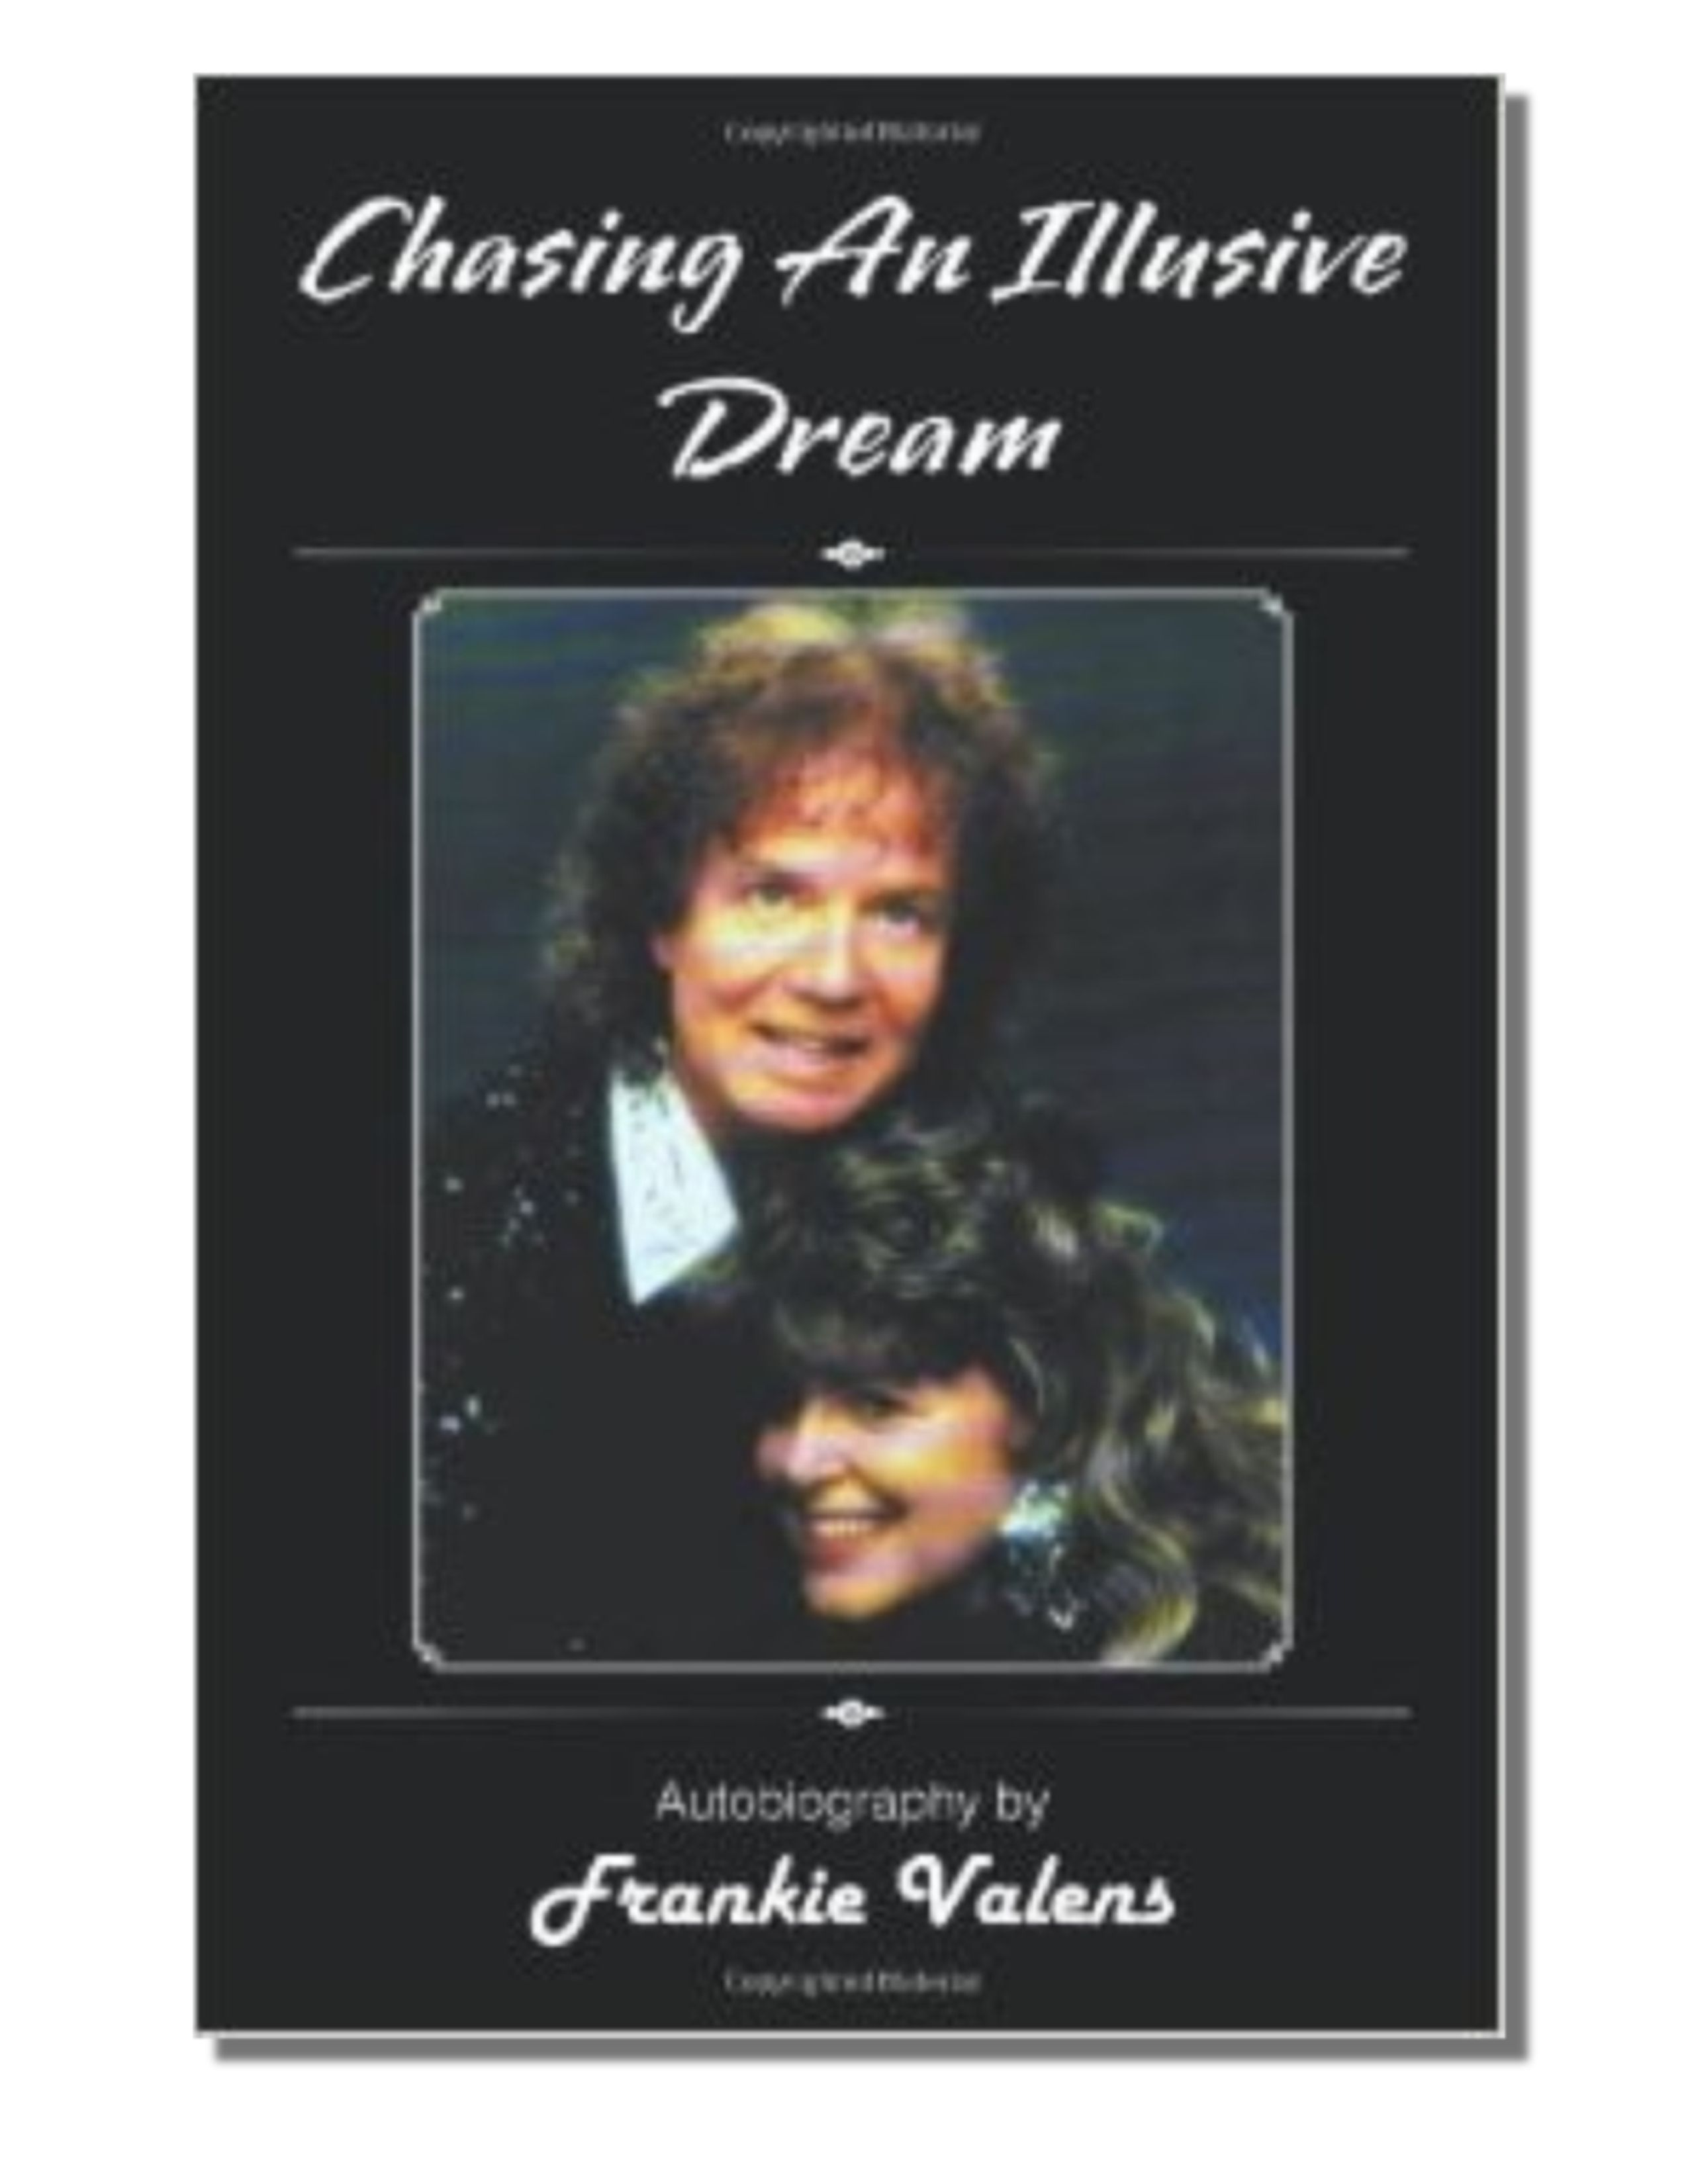 Autobiography by Frankie Valens. Read all about this pop music legend from the 60's! Inspiring story. www.sunnidaiz.com $29.95